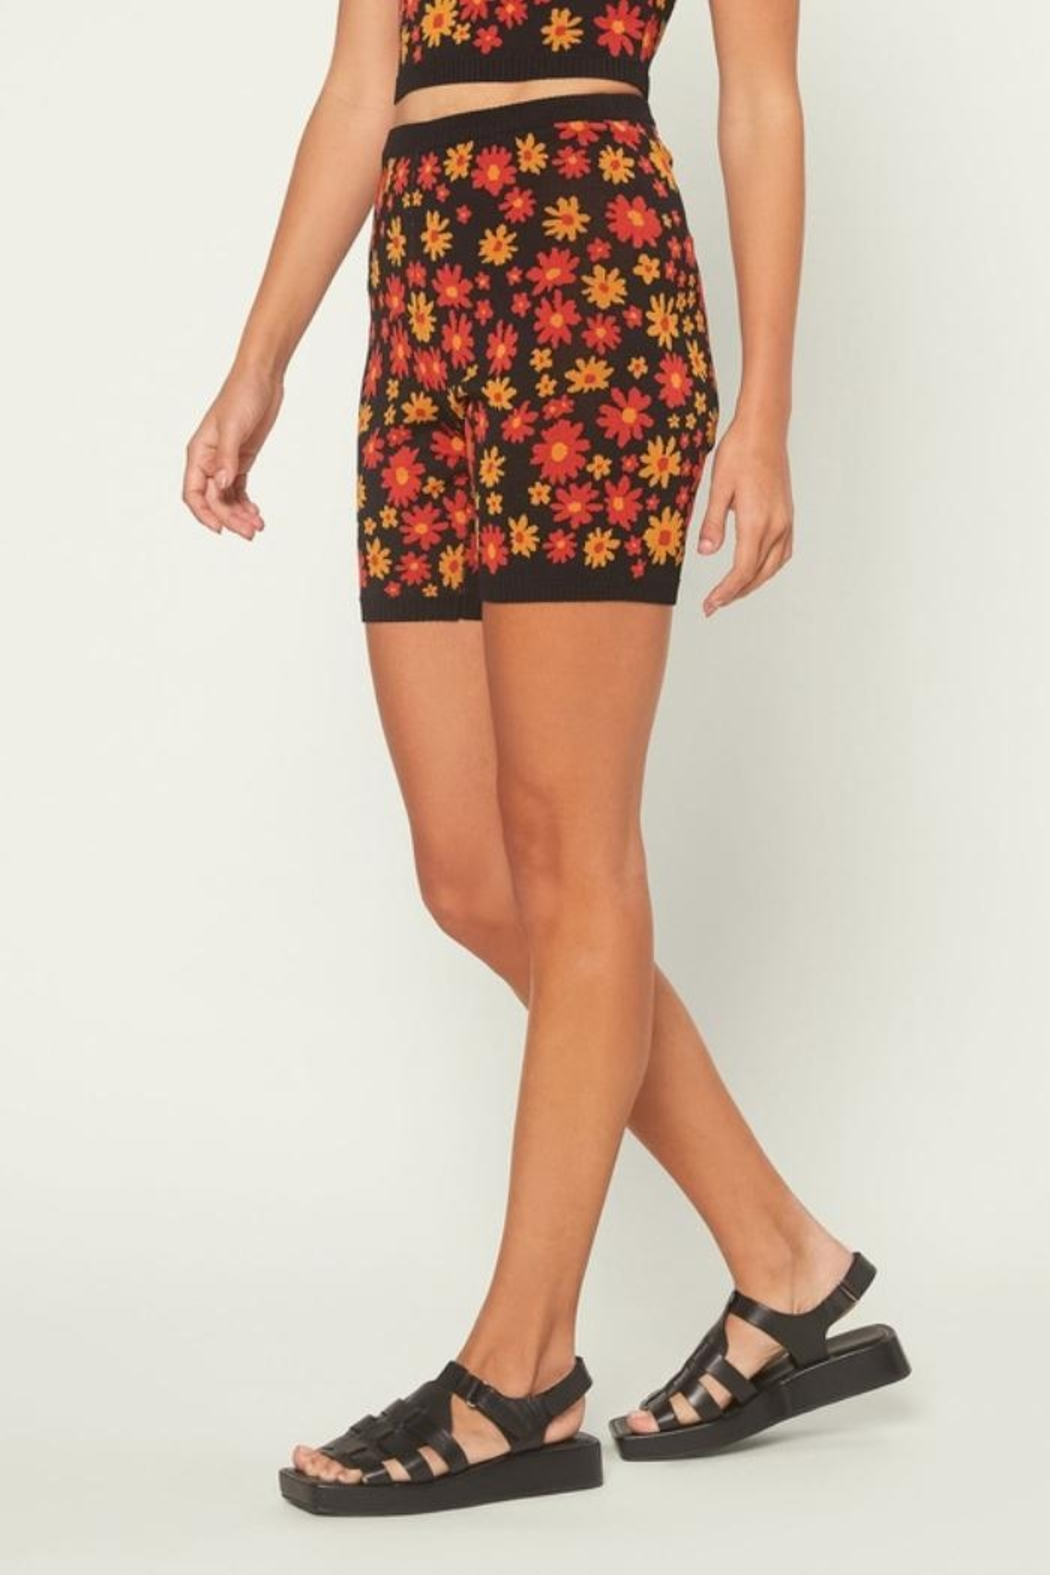 Current Air Floral Knit Shorts - Back Cropped Image